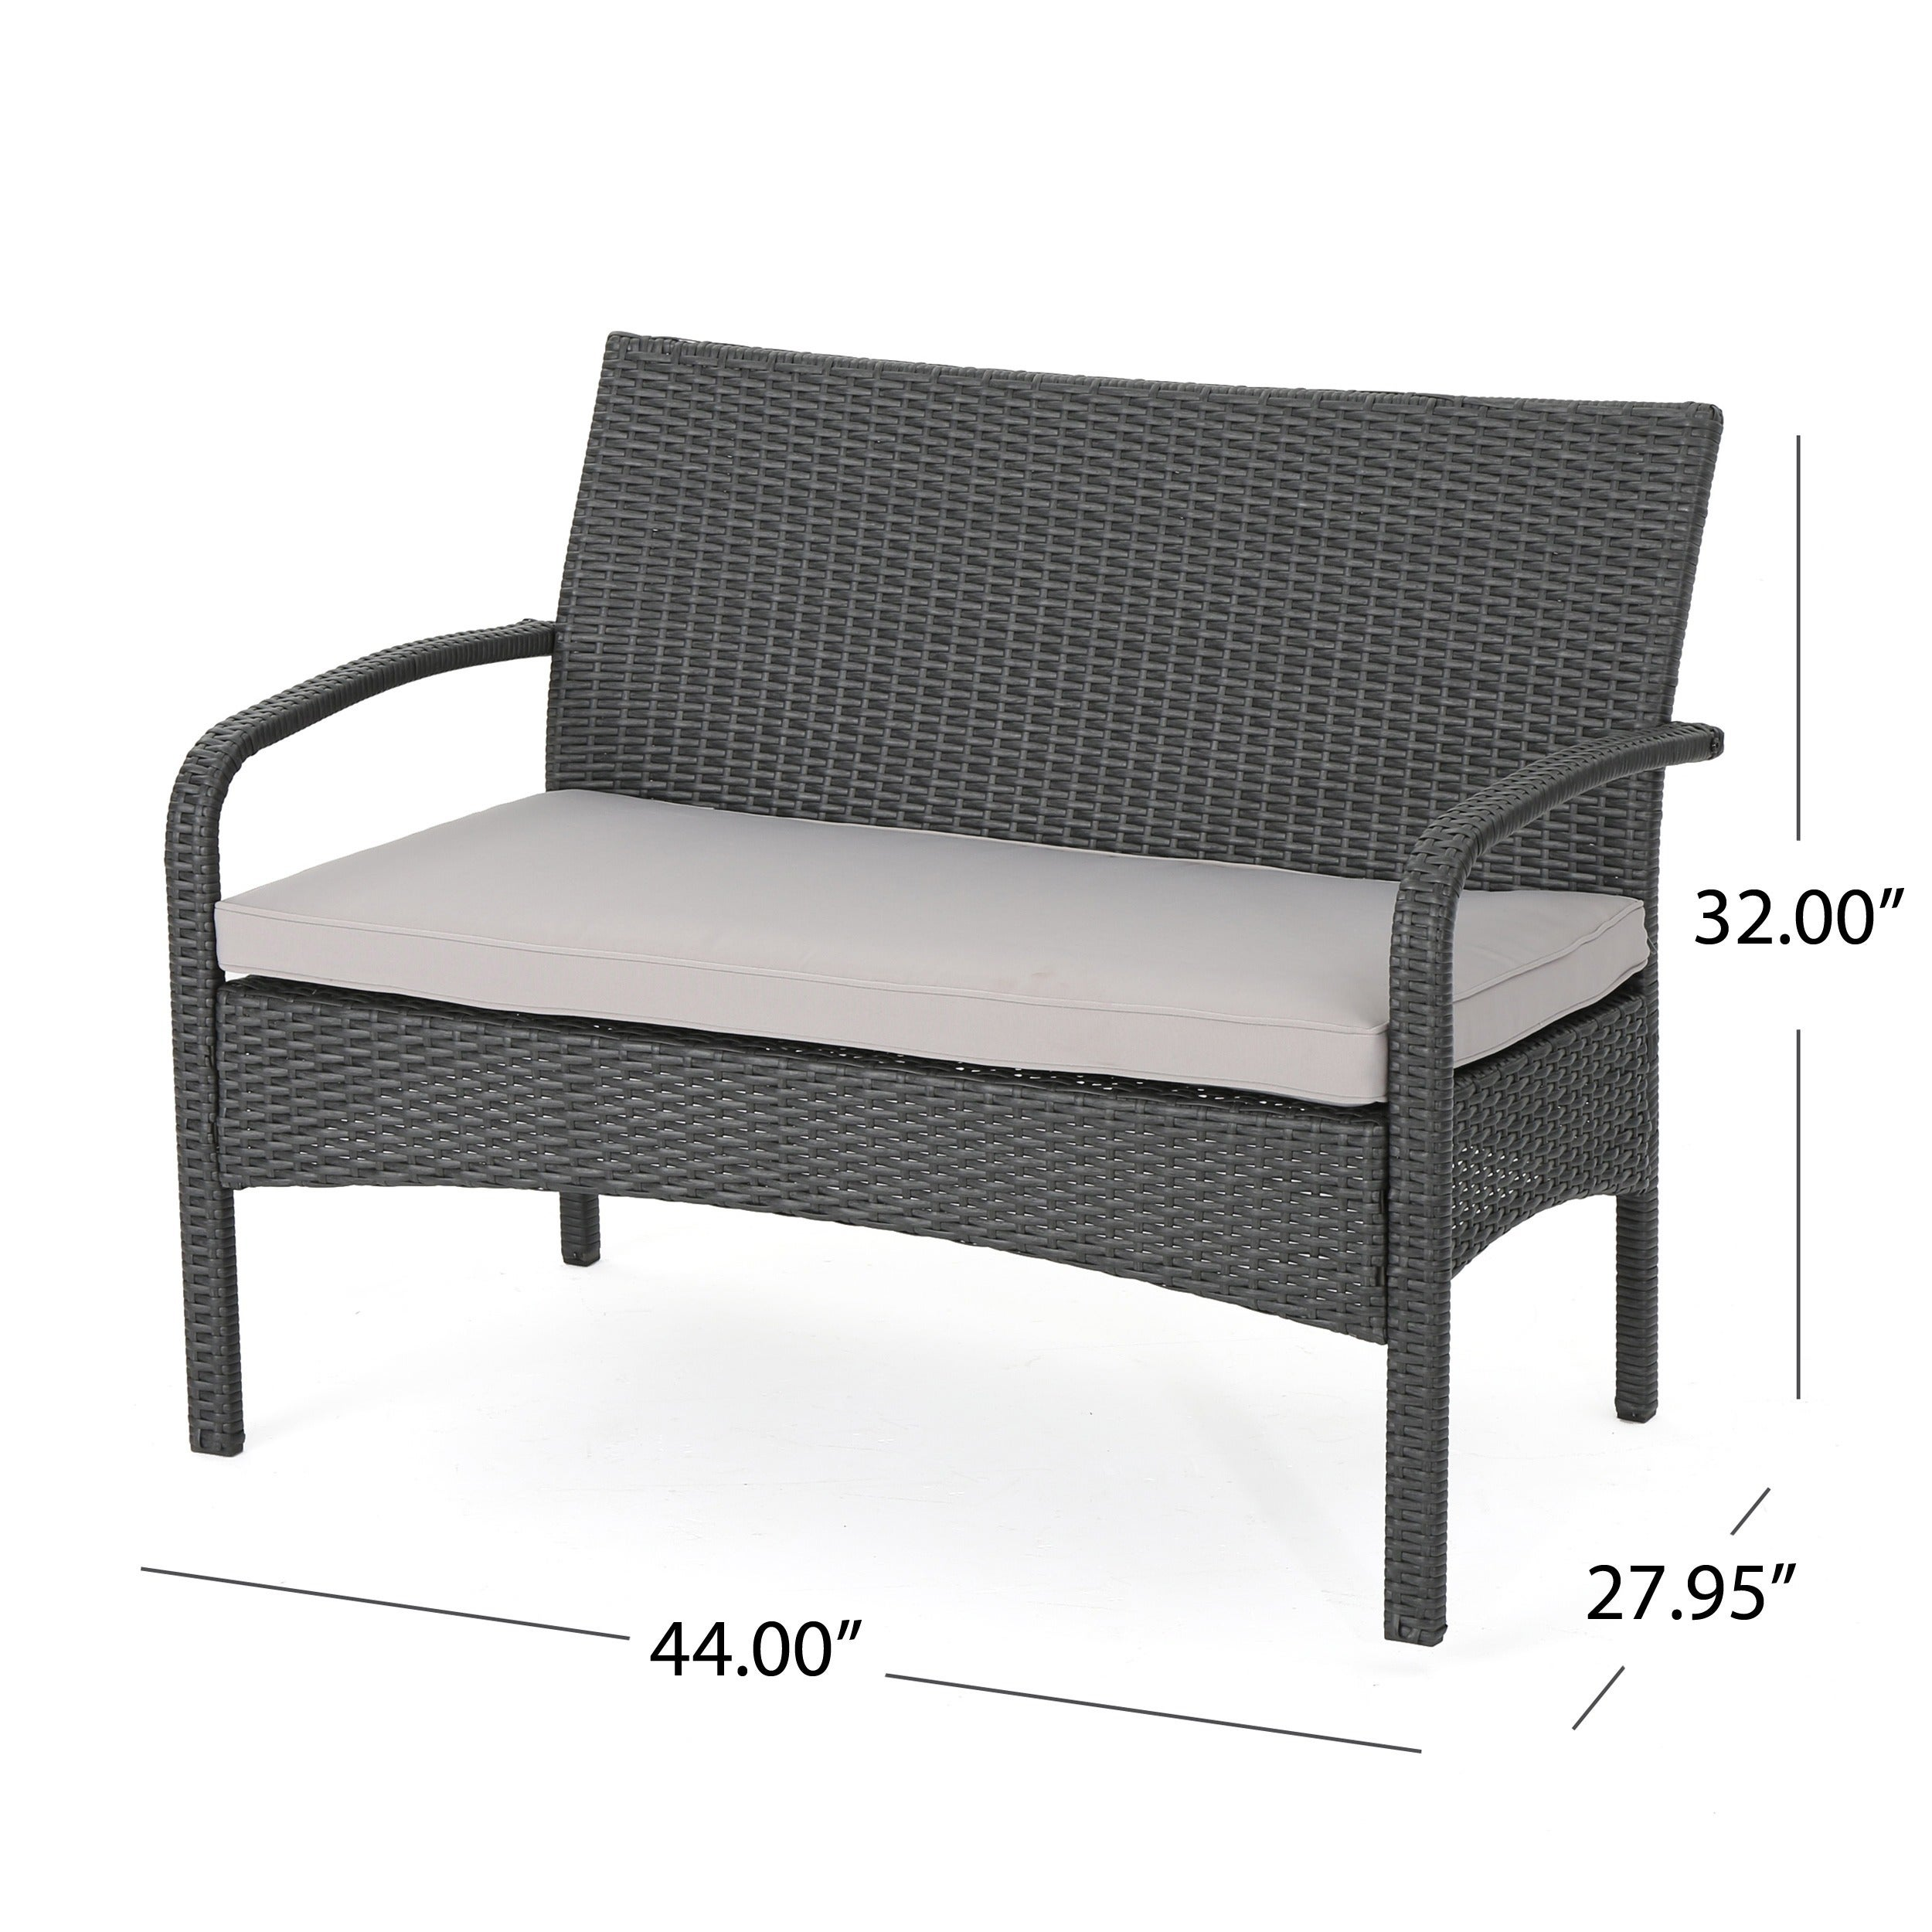 Cordoba Outdoor Wicker 4 piece Conversation Set with Cushions by